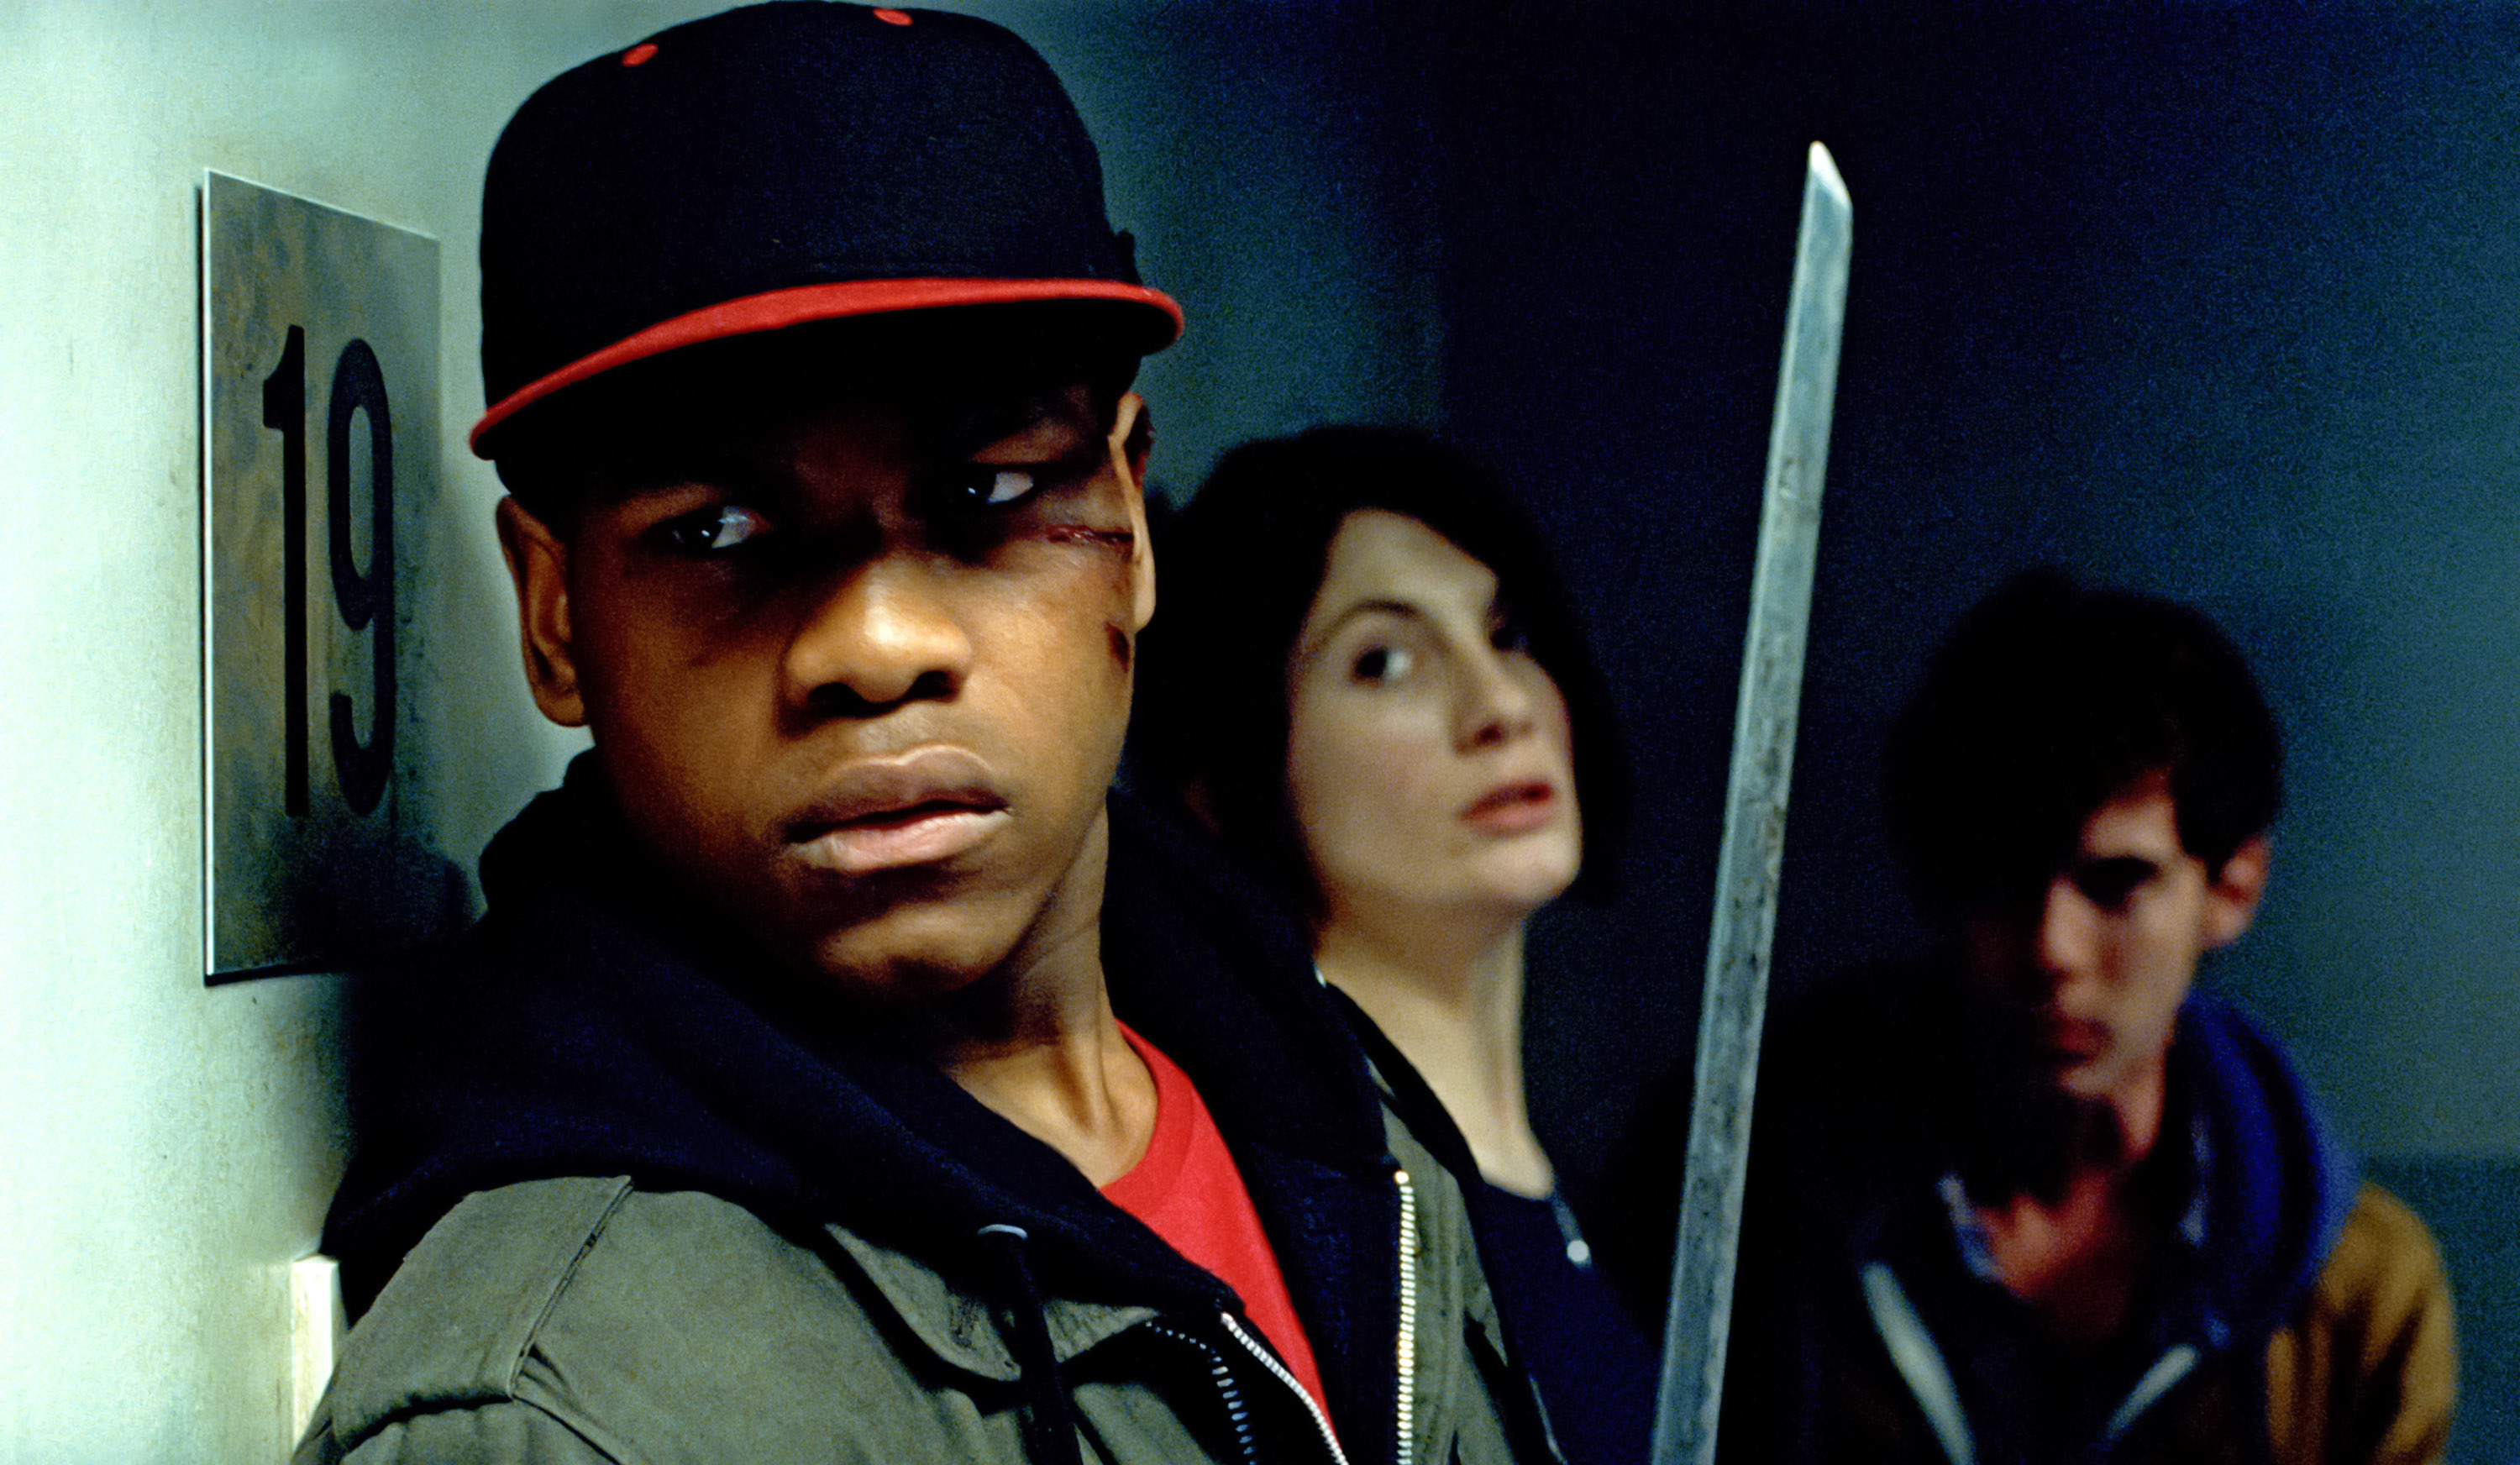 John Boyega holding a sword while Jodie Whittaker and Luke Treadaway look concerned.